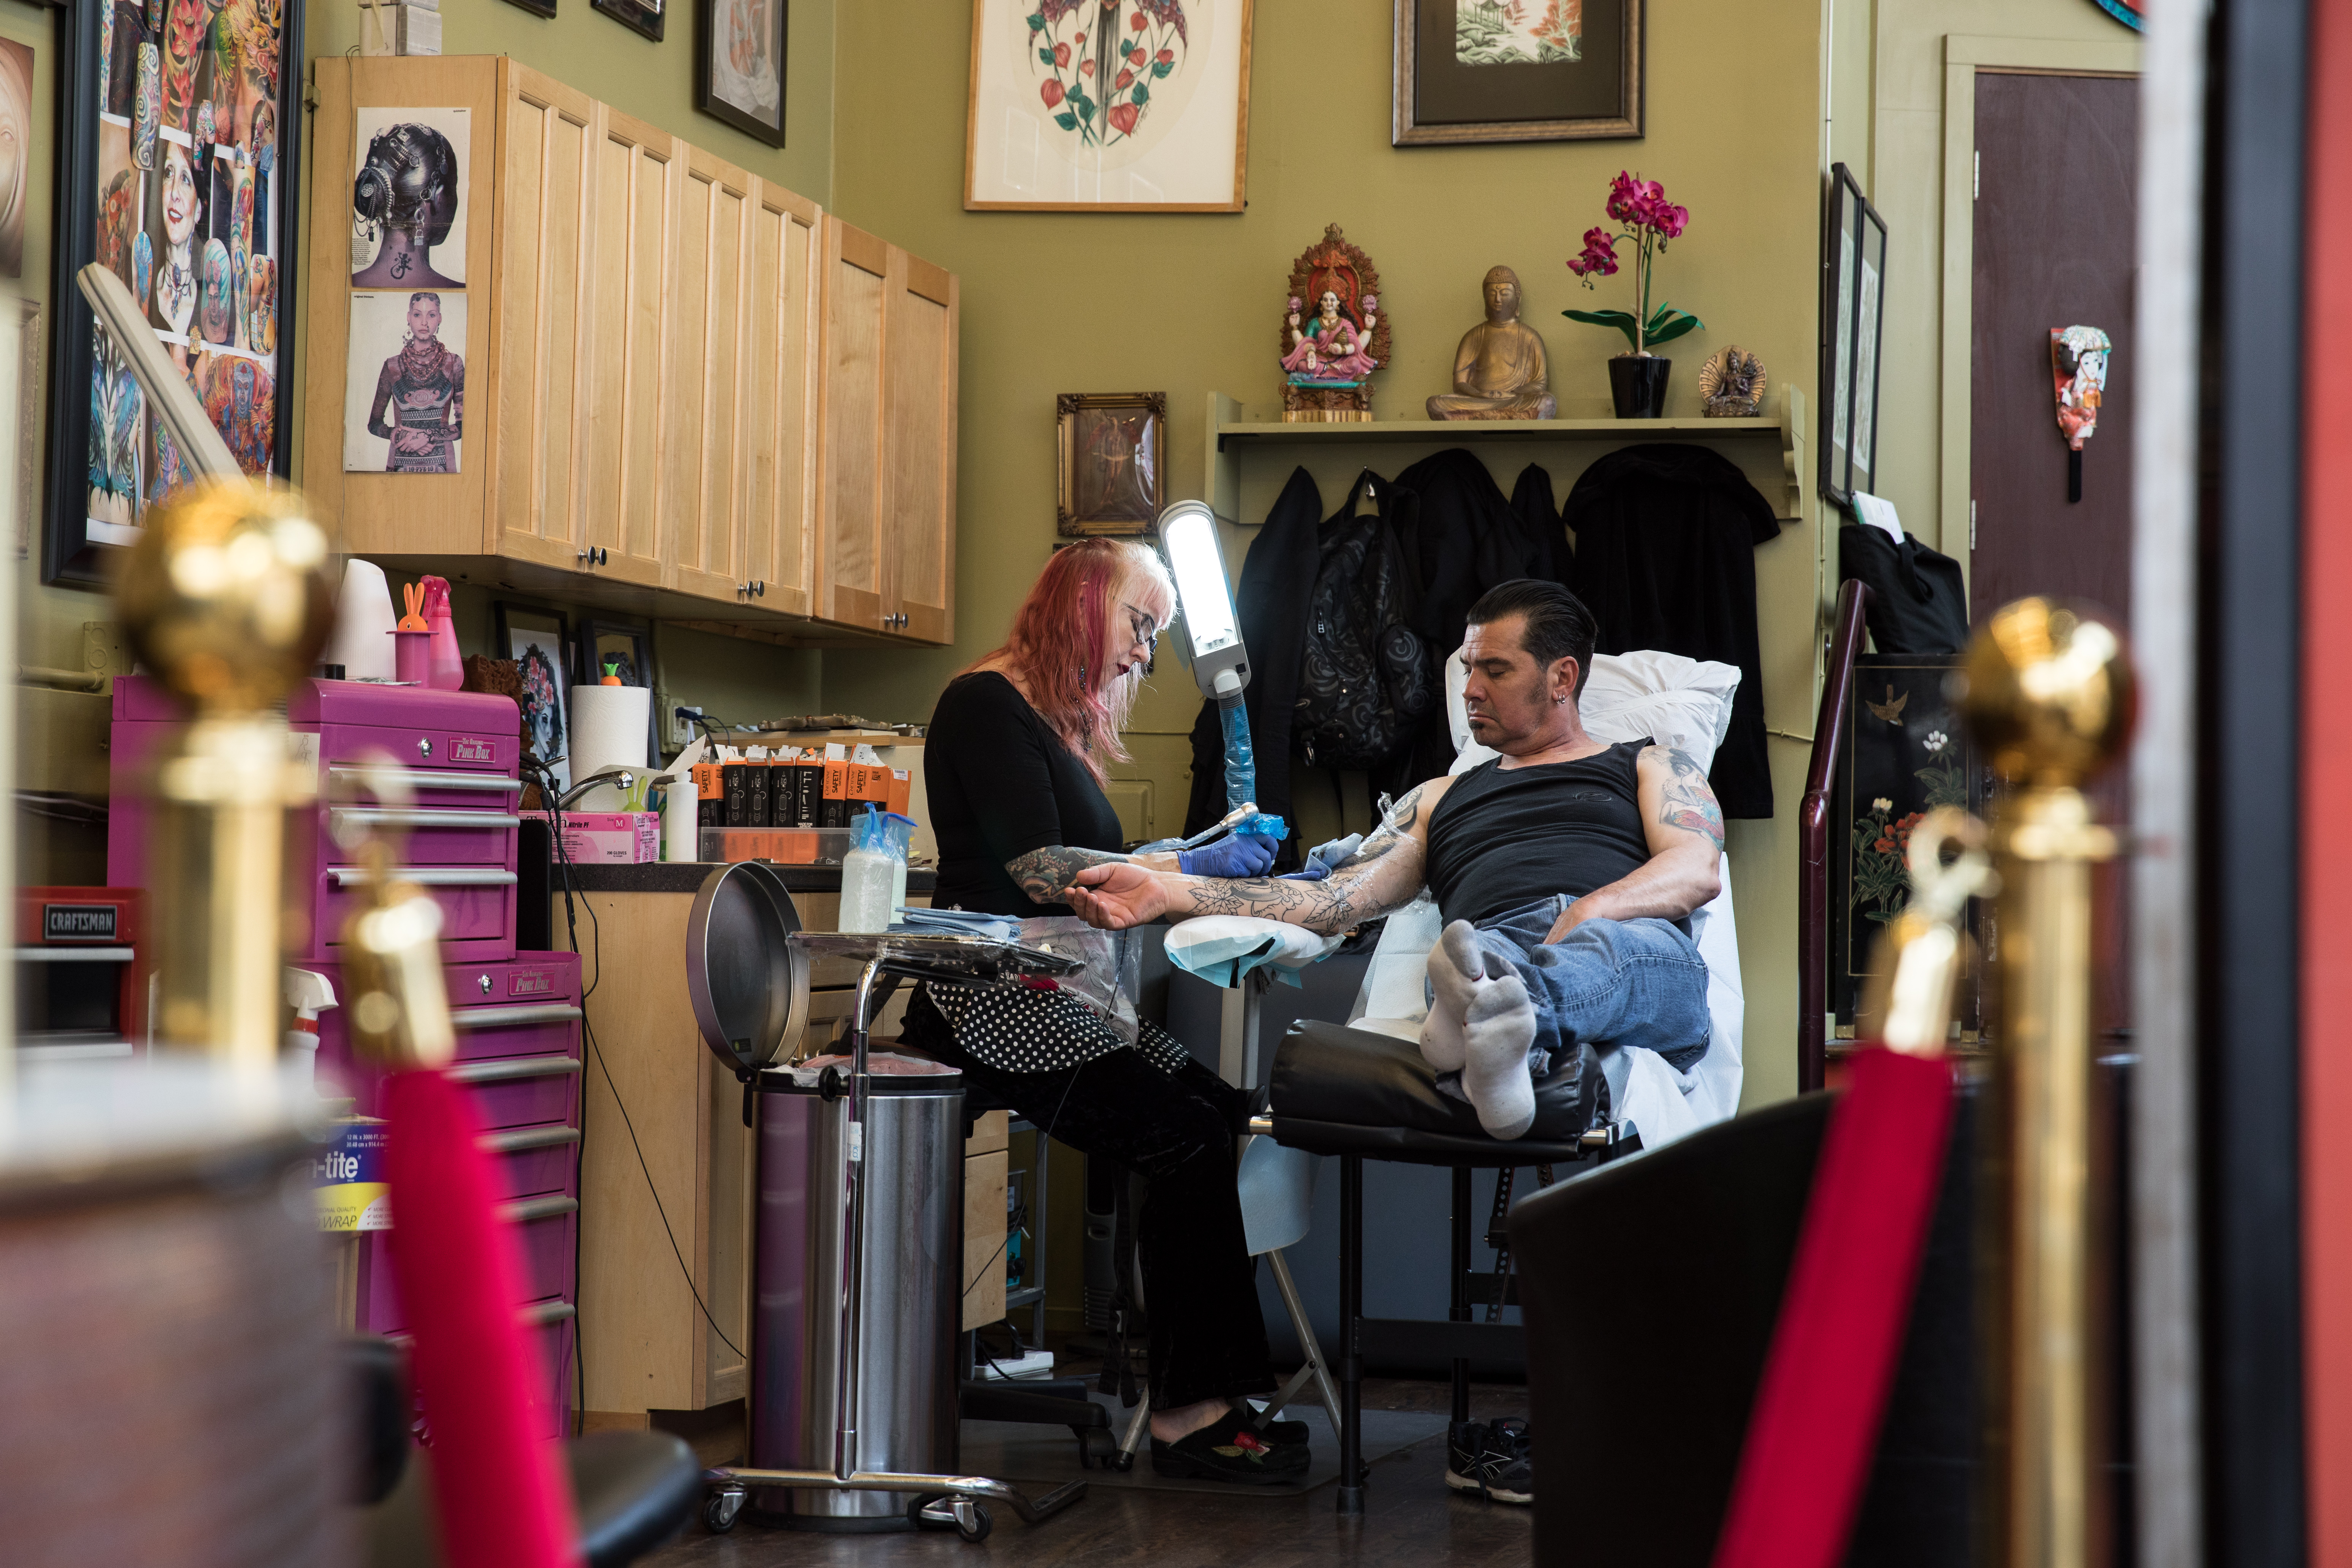 Madame Lazonga's Tattoo studio is decorated in a variety of art ranging from sketches from Vyvyn's earlier years of tattooing to framed articles written about her work. (Image: Riley Bunch / Seattle Refined)